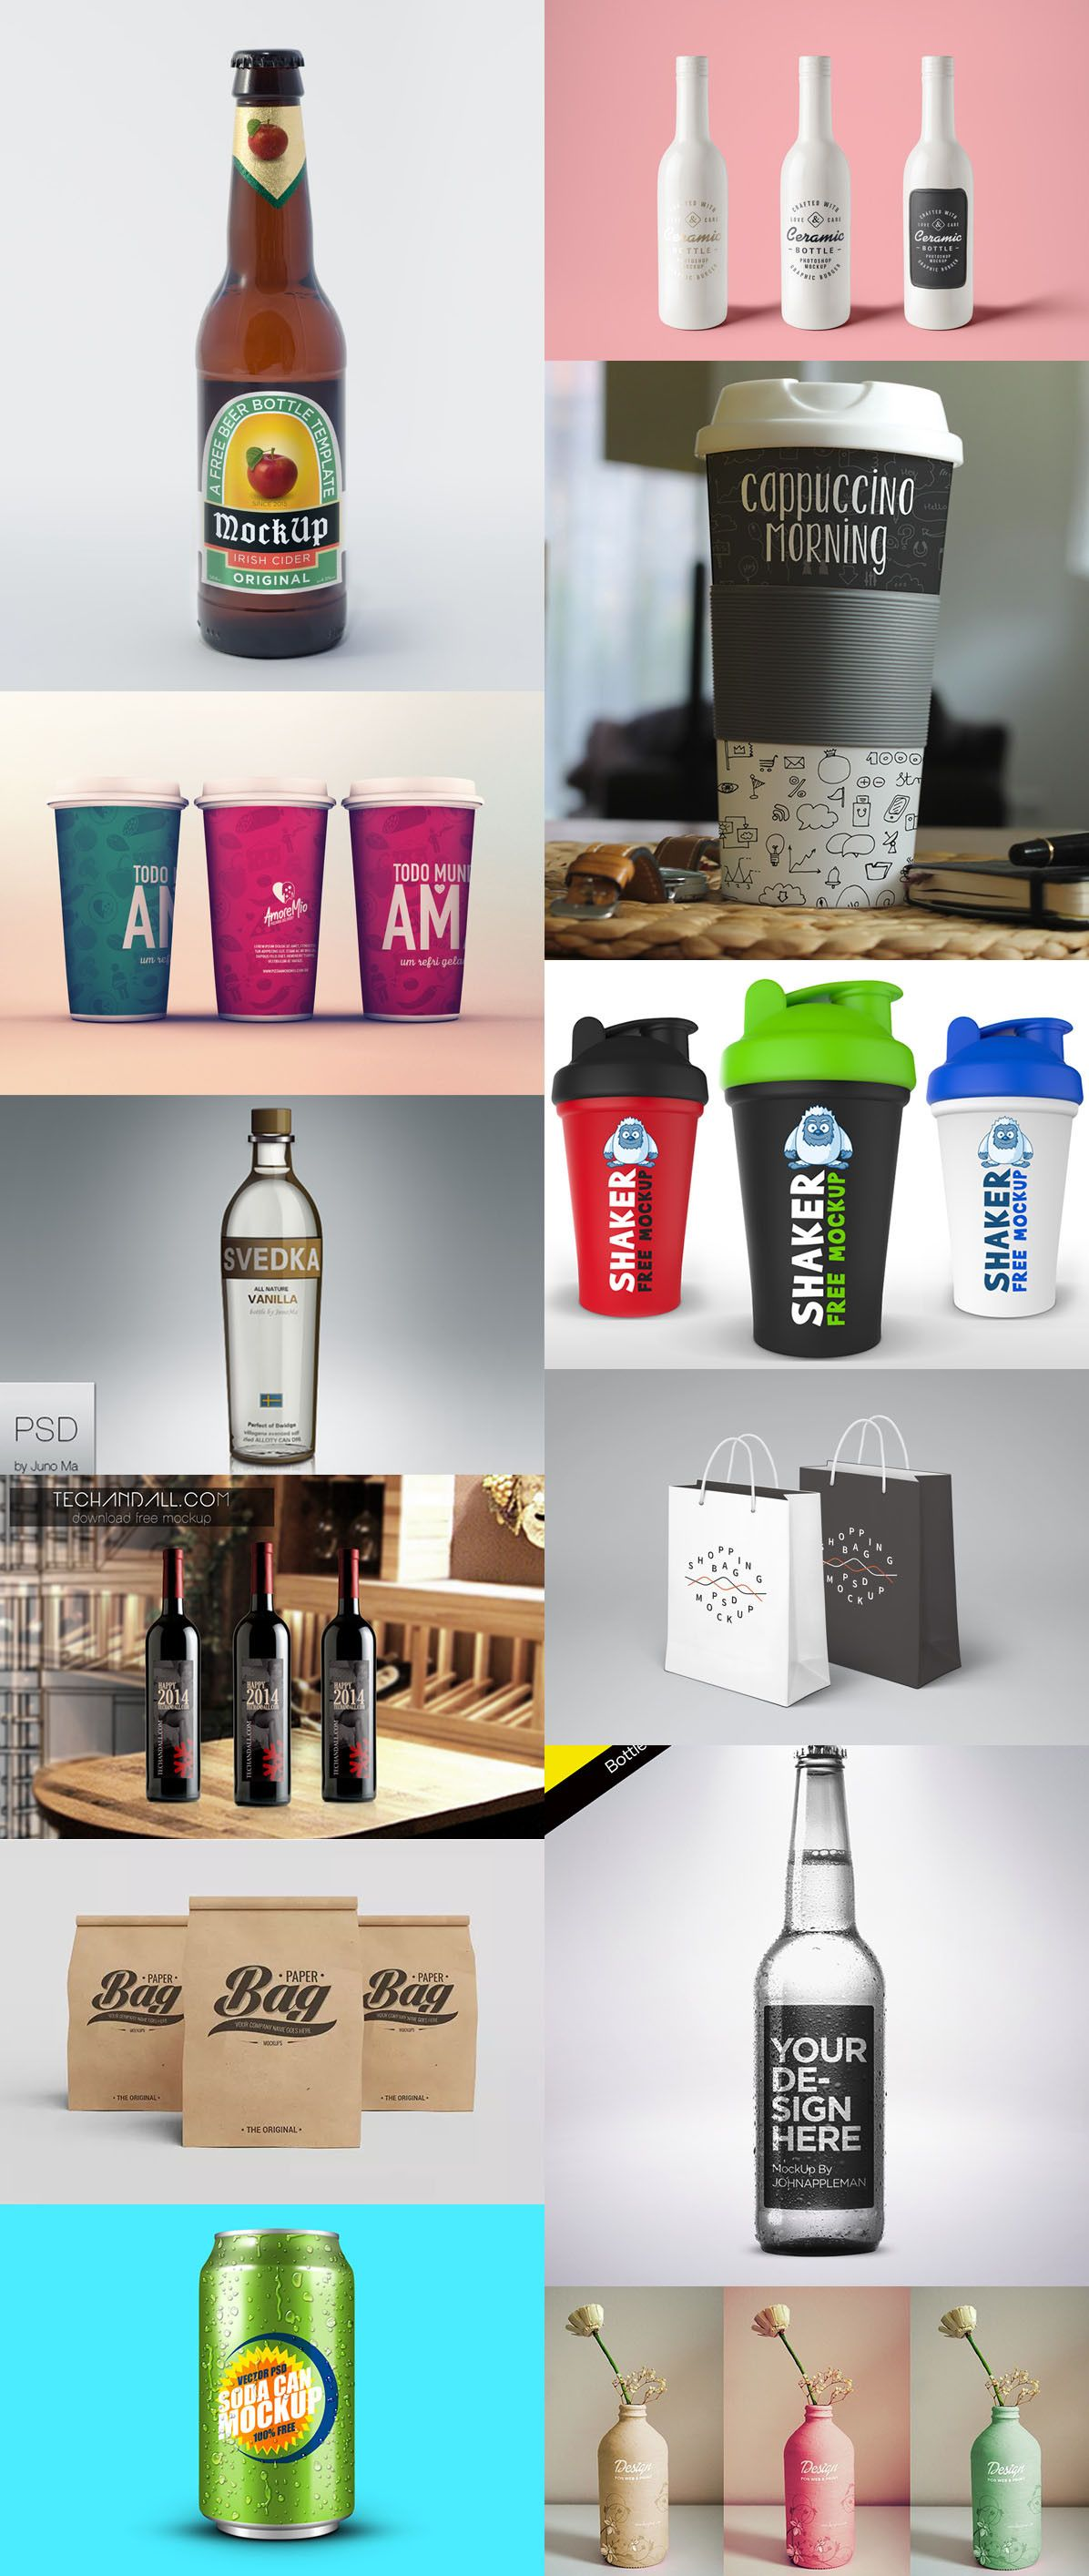 Download 105 Product Packaging Mockups Free Premium Mockup Packaging Mockup Free Design Elements